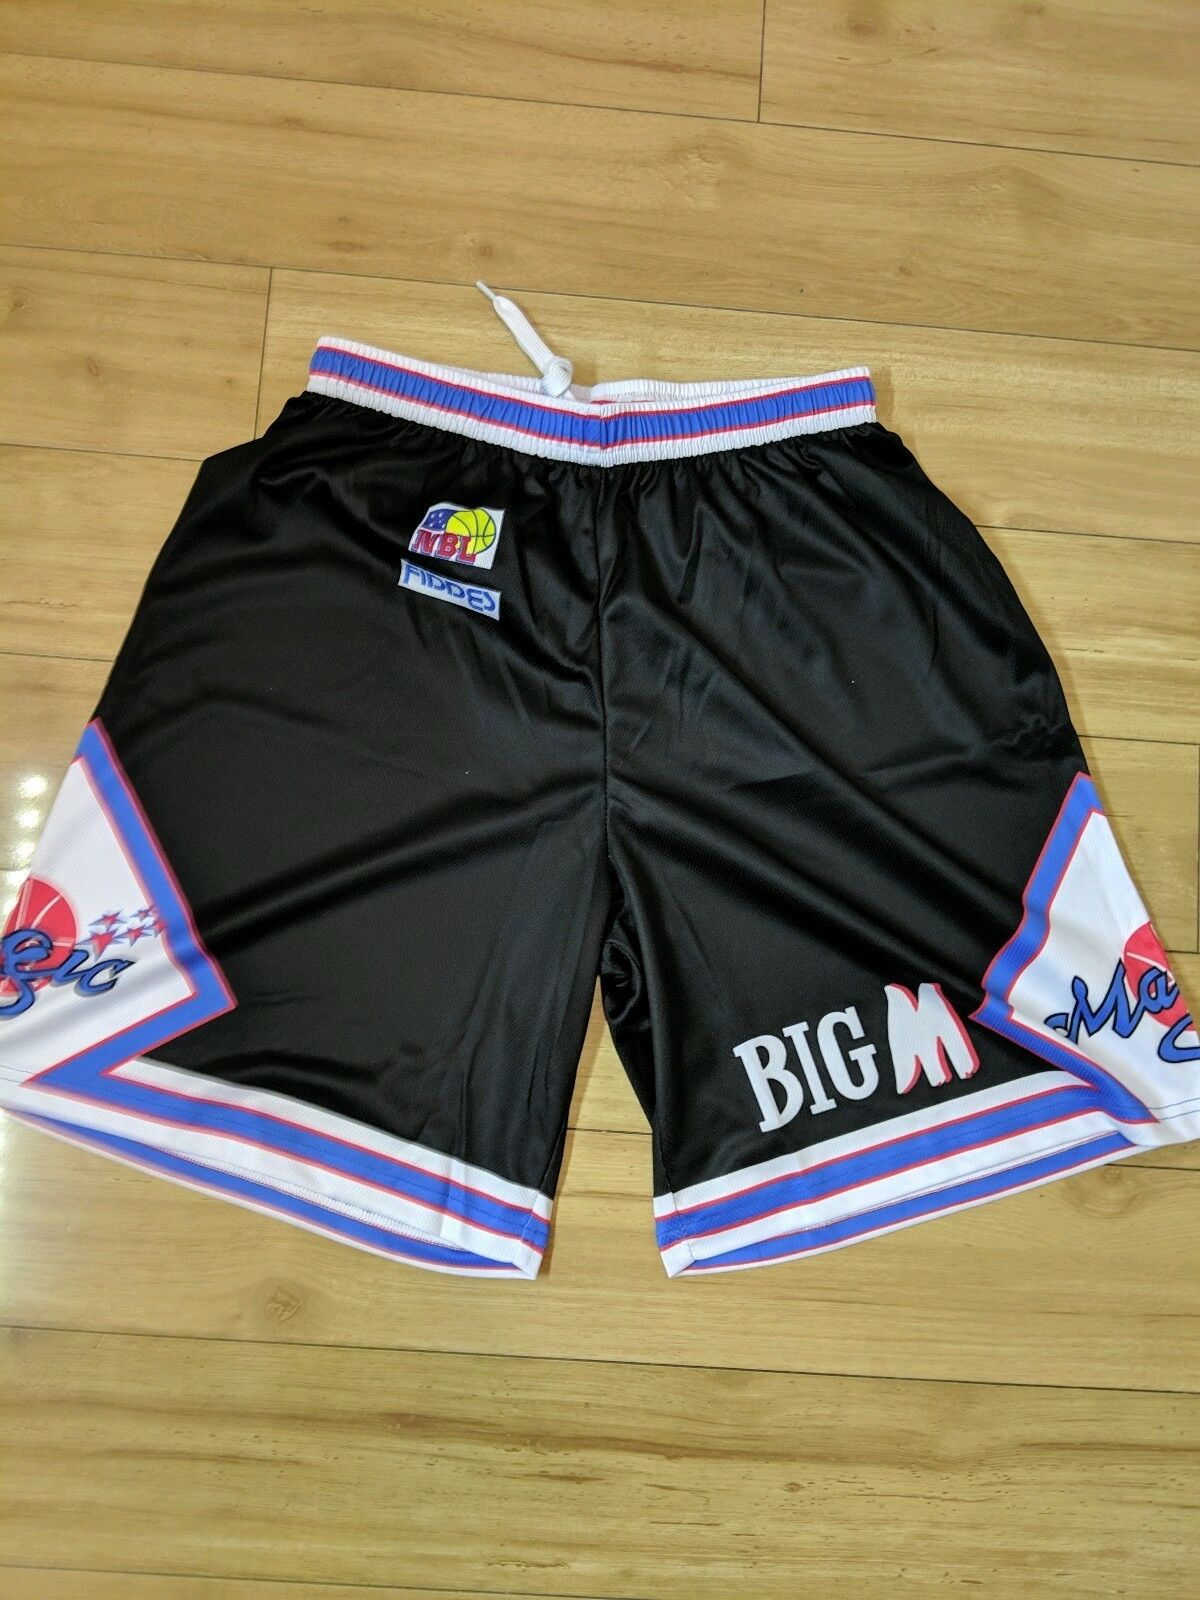 South East Melbourne Magic Replica NBL Basketball Uniform Jersey Shorts - XS